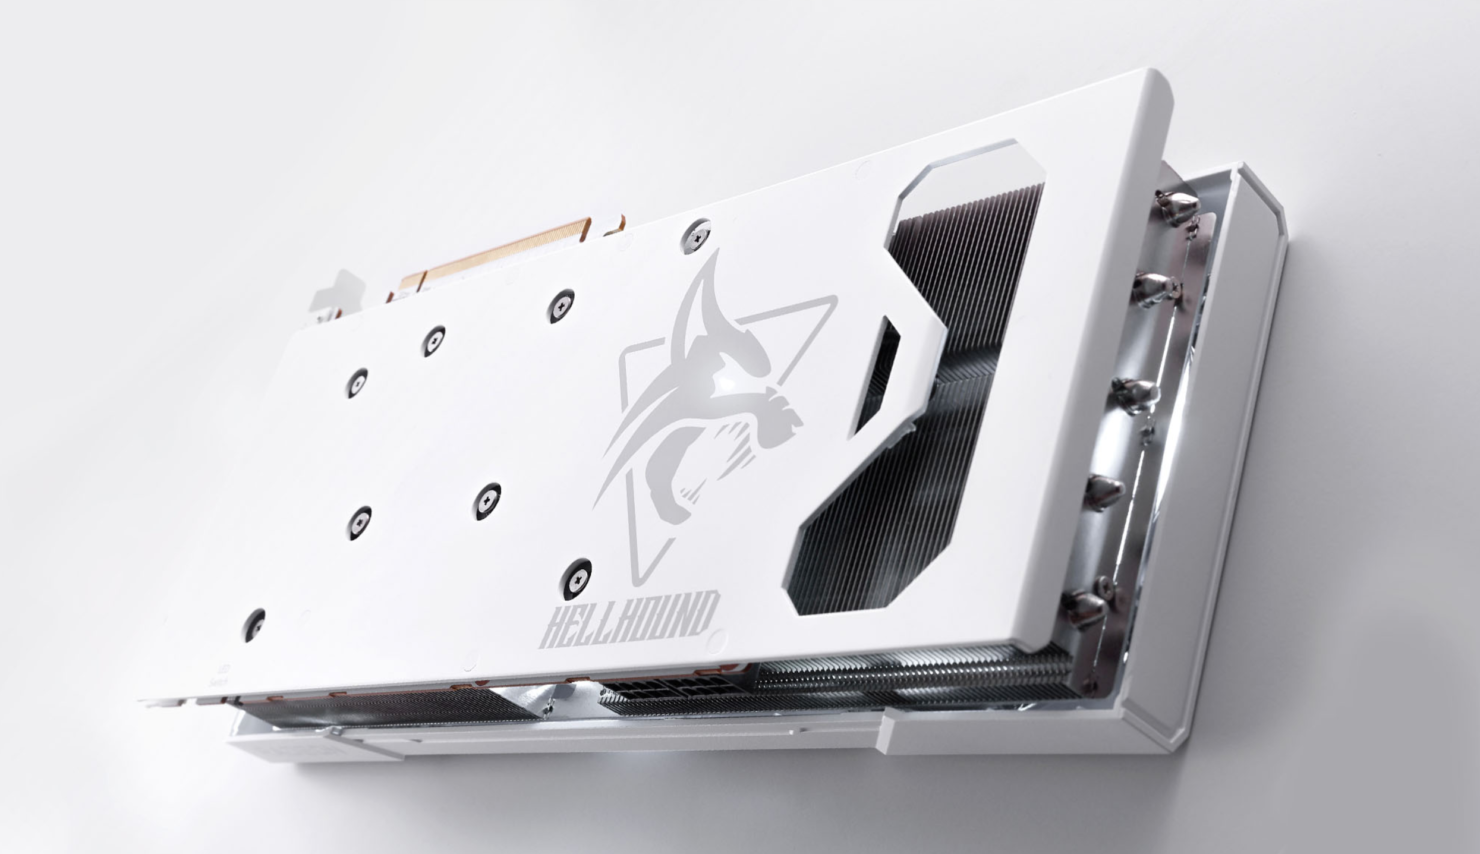 powercolor-radeon-rx-6700-xt-hellbound-spectral-white-graphics-card-_5